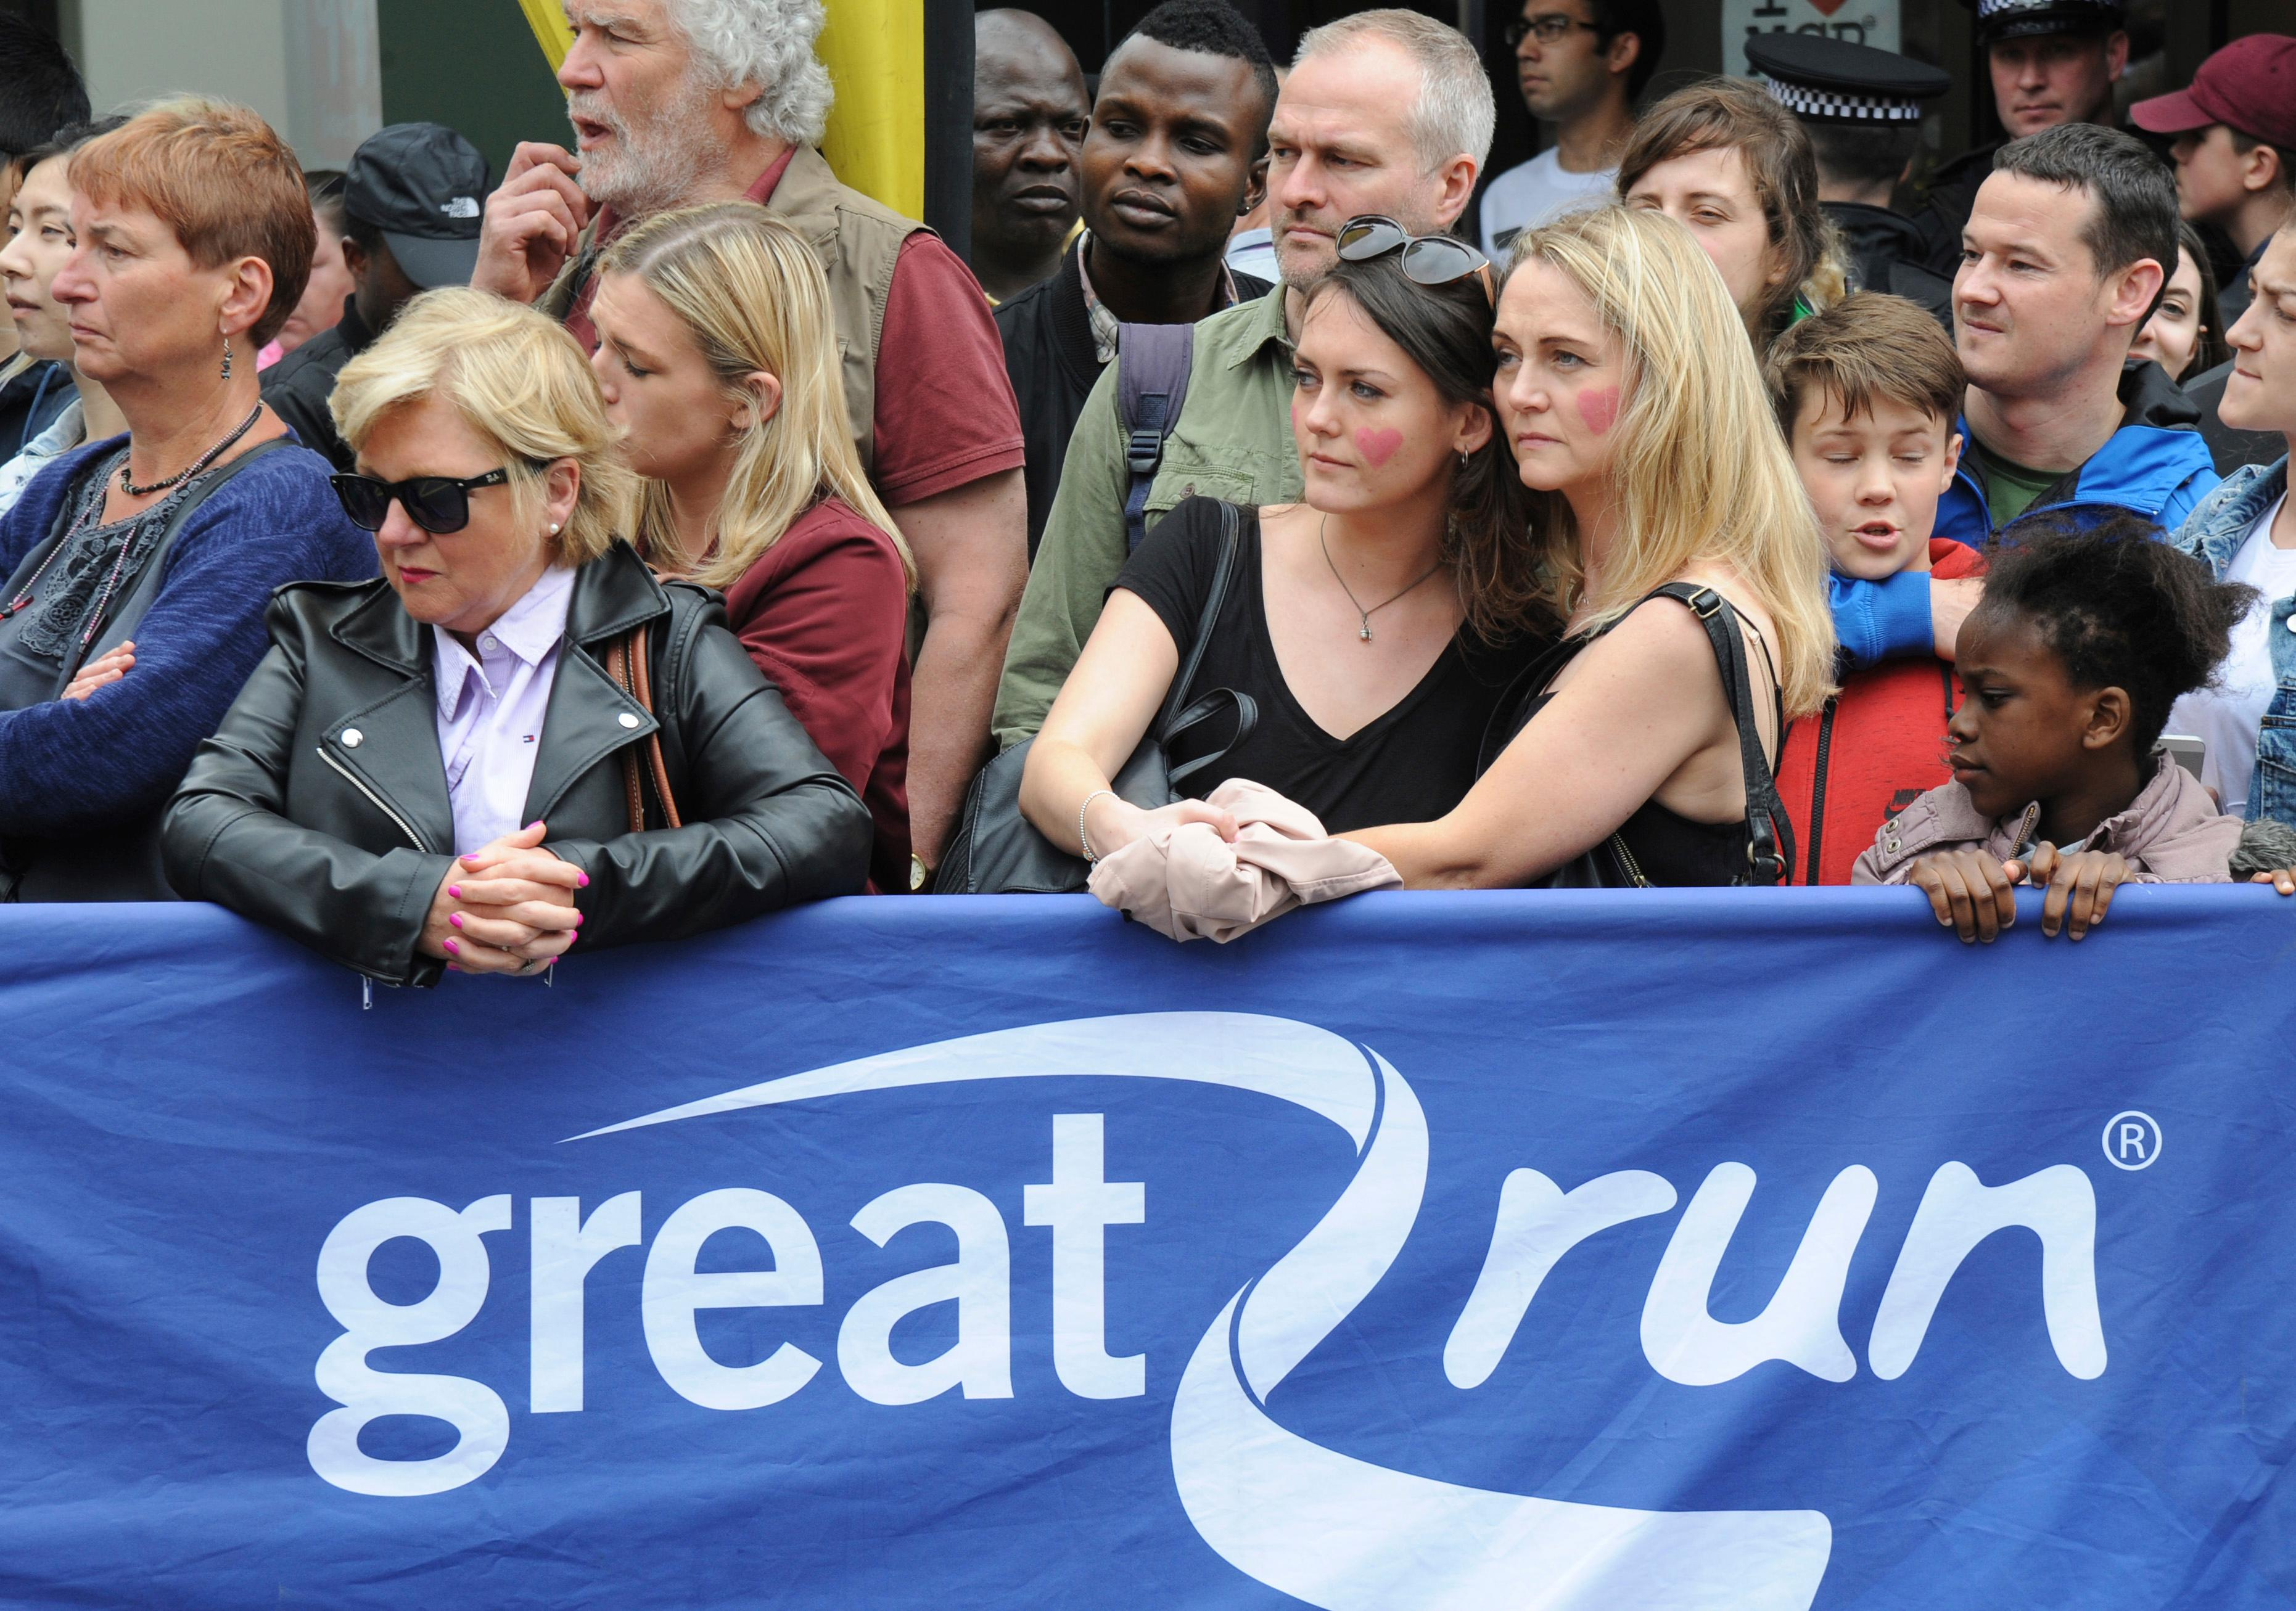 People wait for the start of the Great Manchester Run in central Manchester, England Sunday May 28 2017. More than 20 people were killed in an explosion following a Ariana Grande concert at the Manchester Arena late Monday evening. (AP Photo/Rui Vieira)